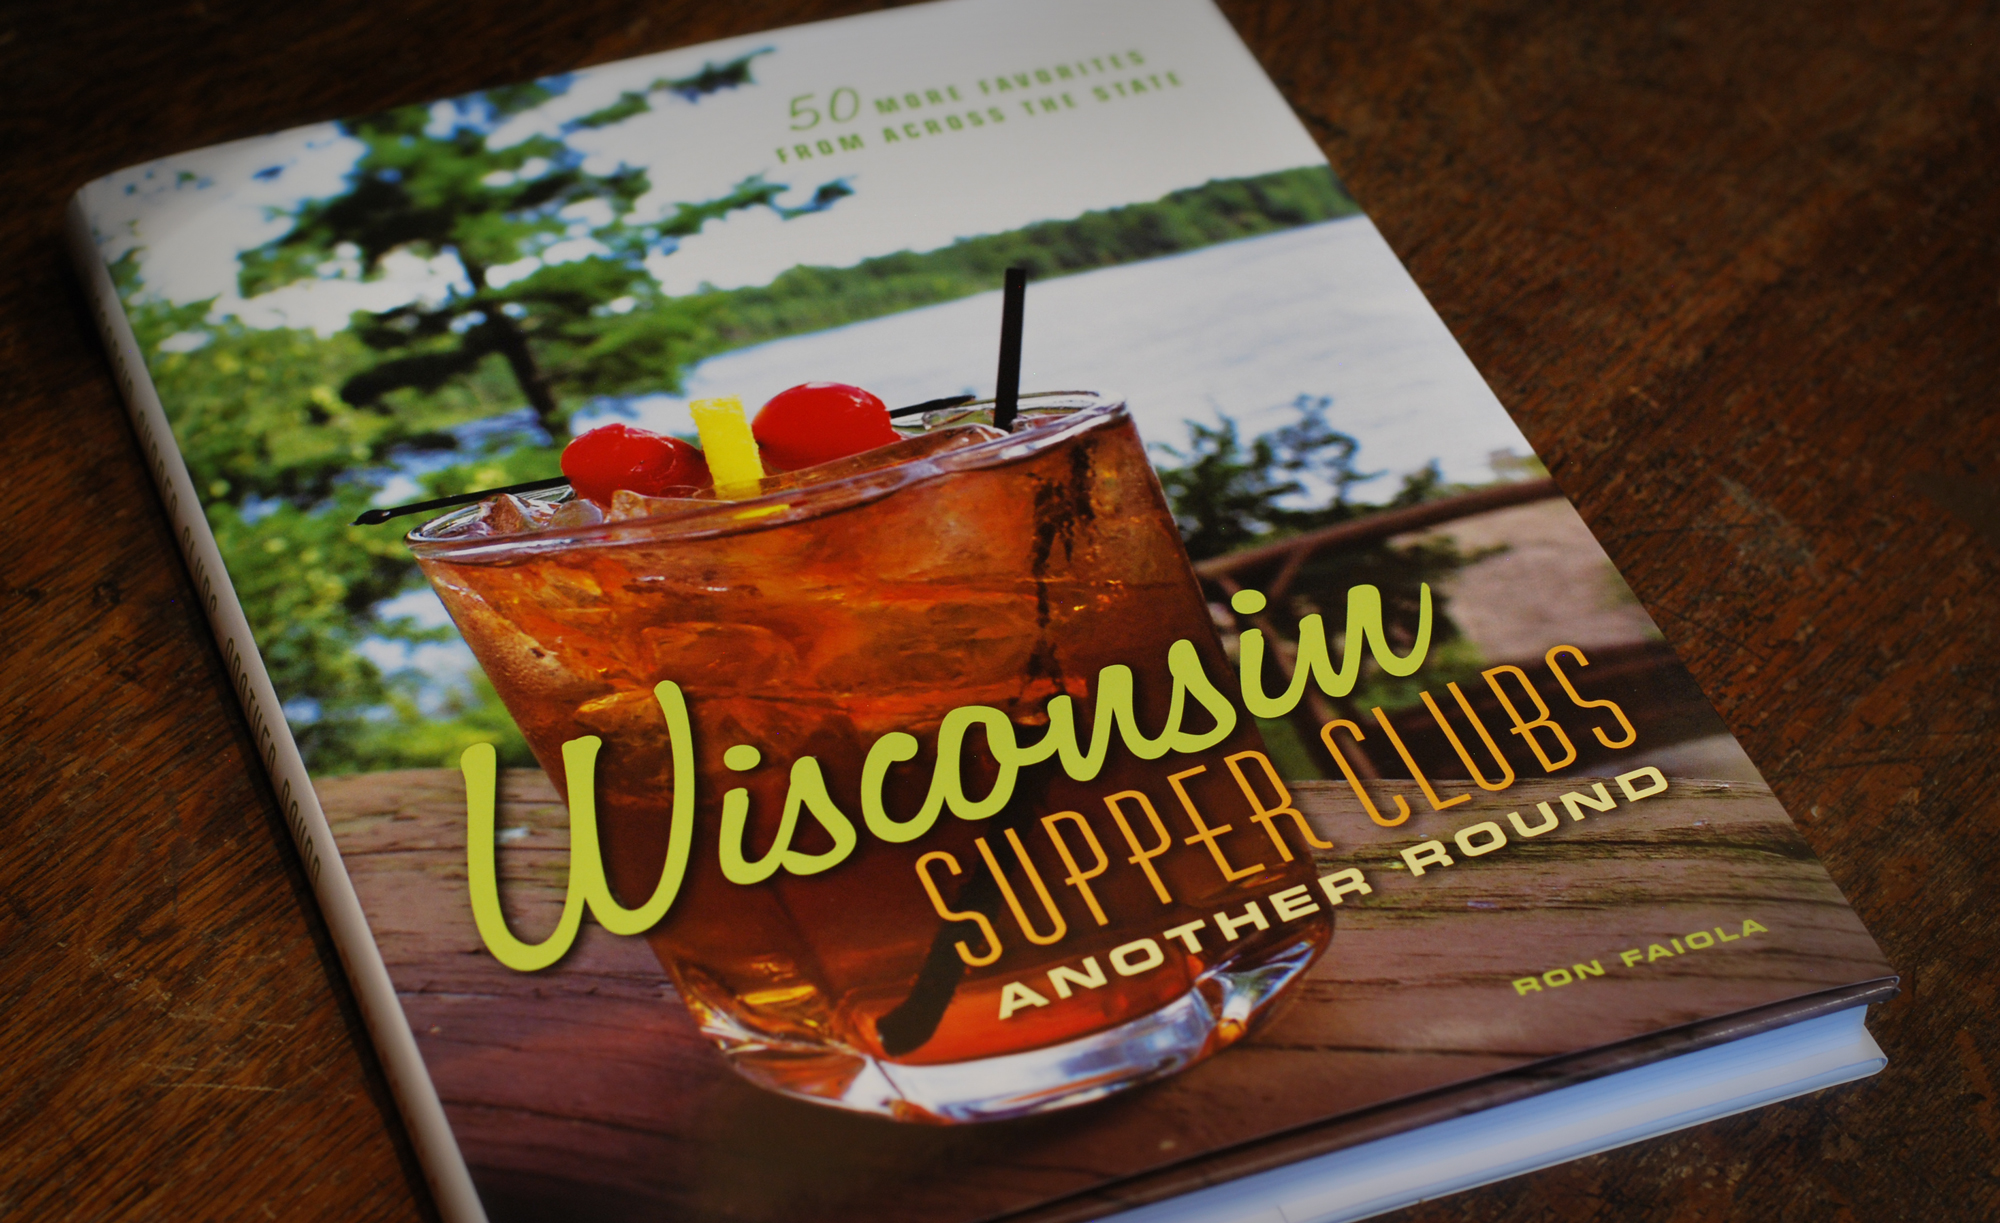 Wisconsin Supper Clubs, Aother Round, by Ron Faiola, featuring Donny's Girl Supper Club